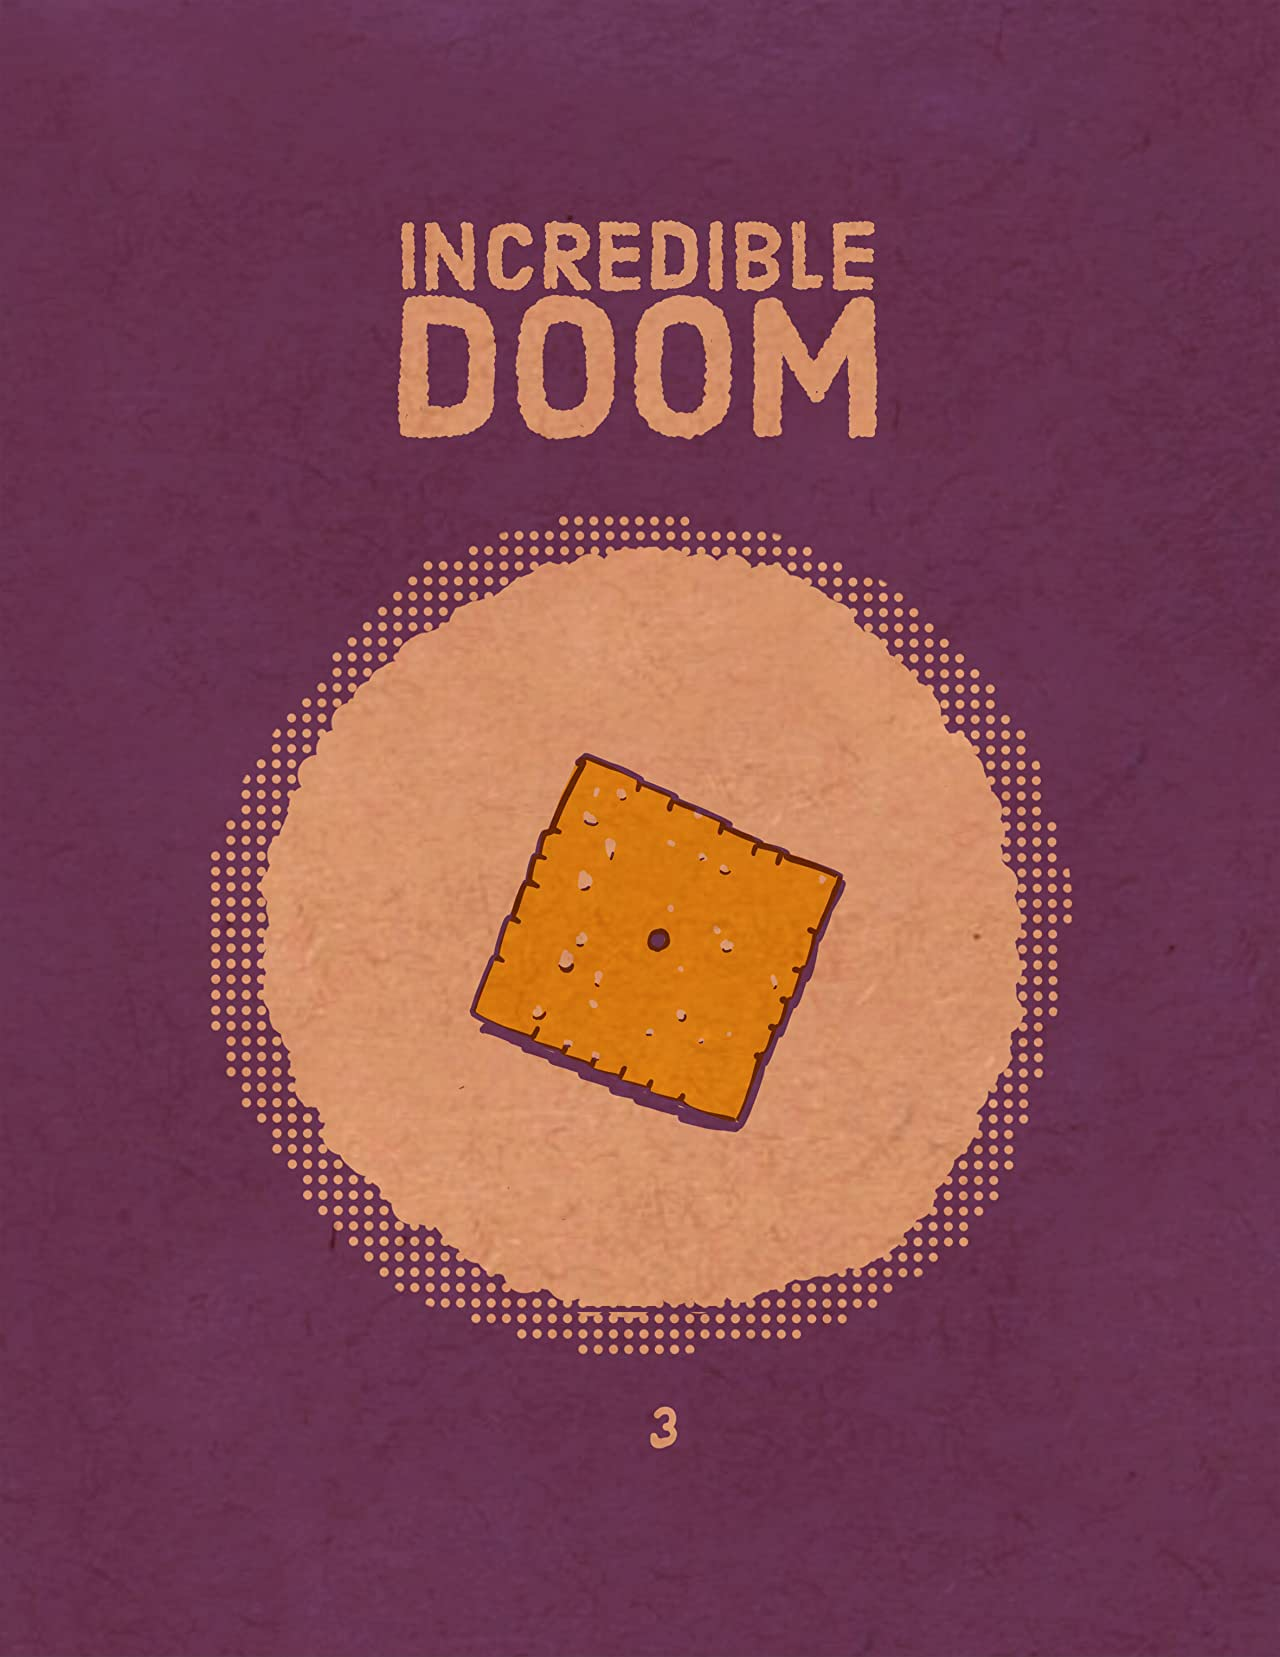 Incredible Doom #3